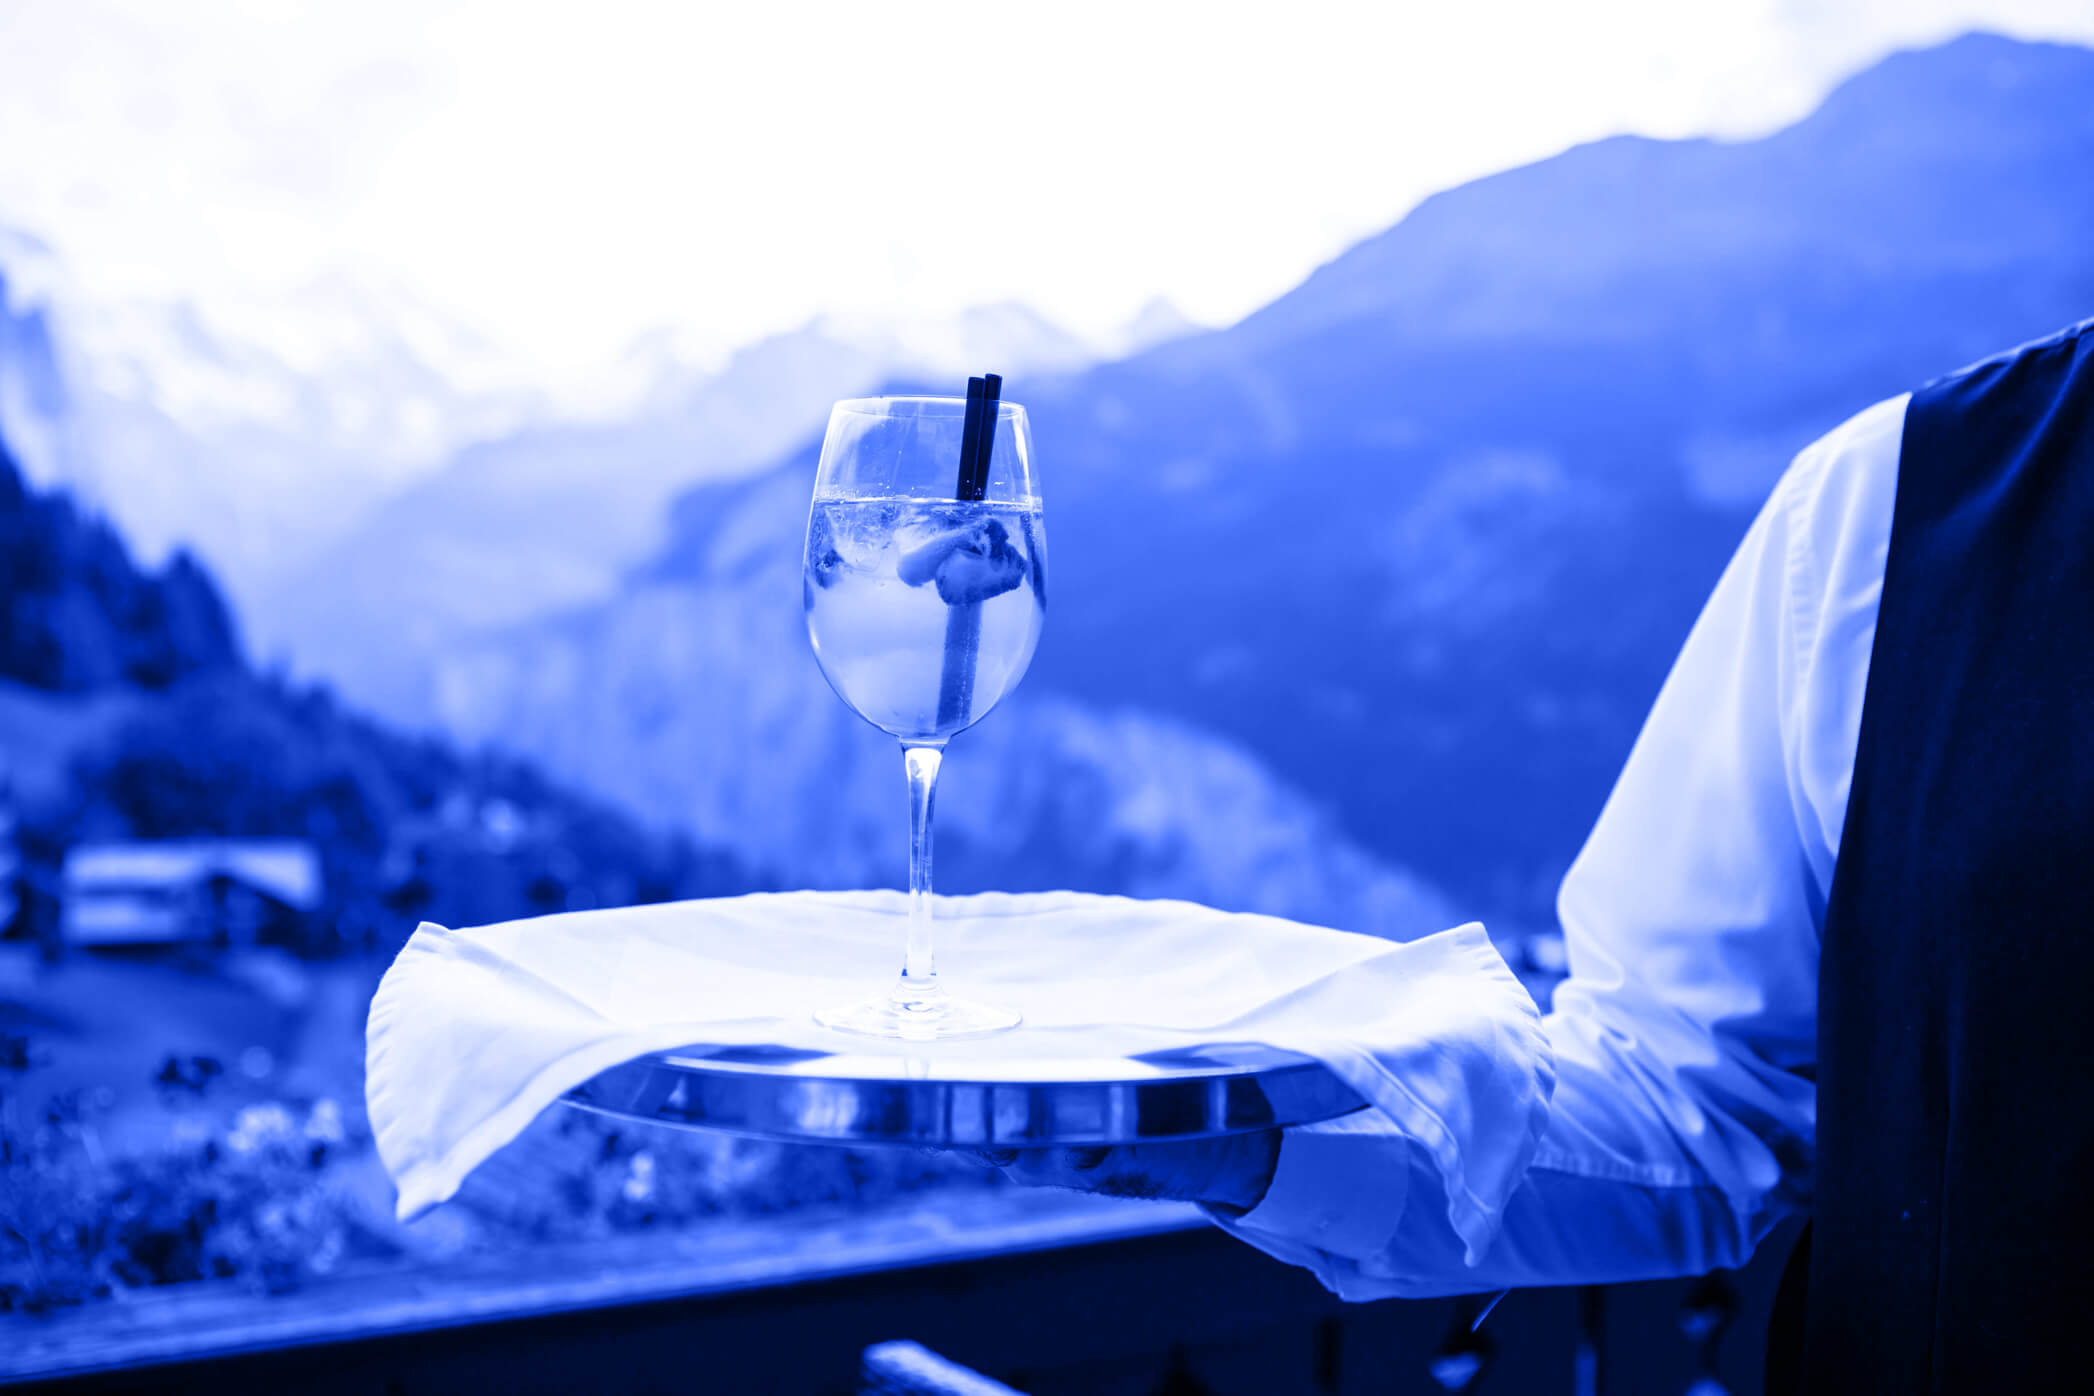 Waiter with a drink on a silver trace. Mountains in the background. Photo by Alev Takil on Unsplash.com